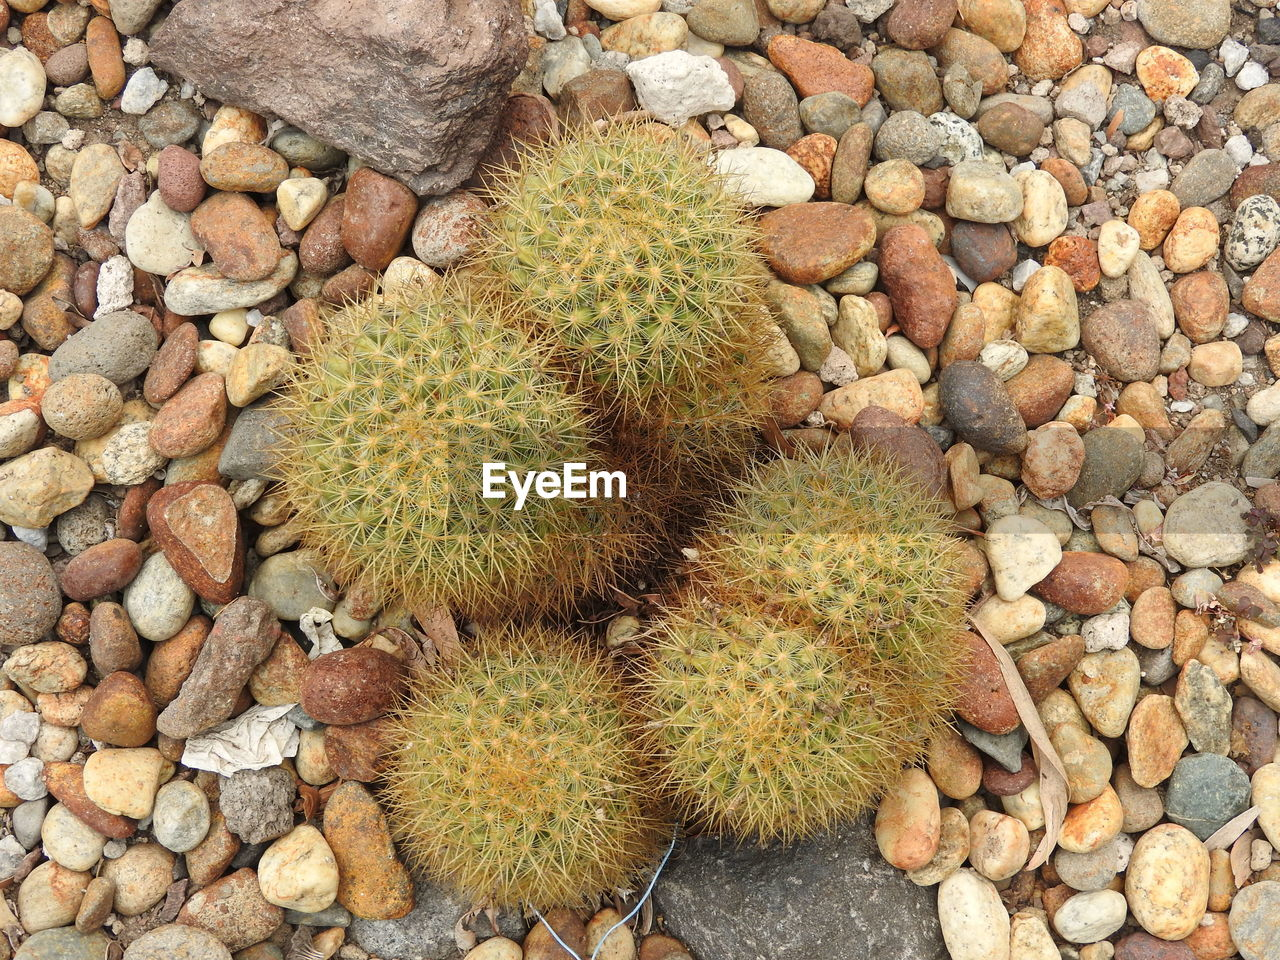 nature, spiked, cactus, stone - object, thorn, outdoors, high angle view, day, rock - object, pebble, no people, directly above, growth, close-up, beach, beauty in nature, pebble beach